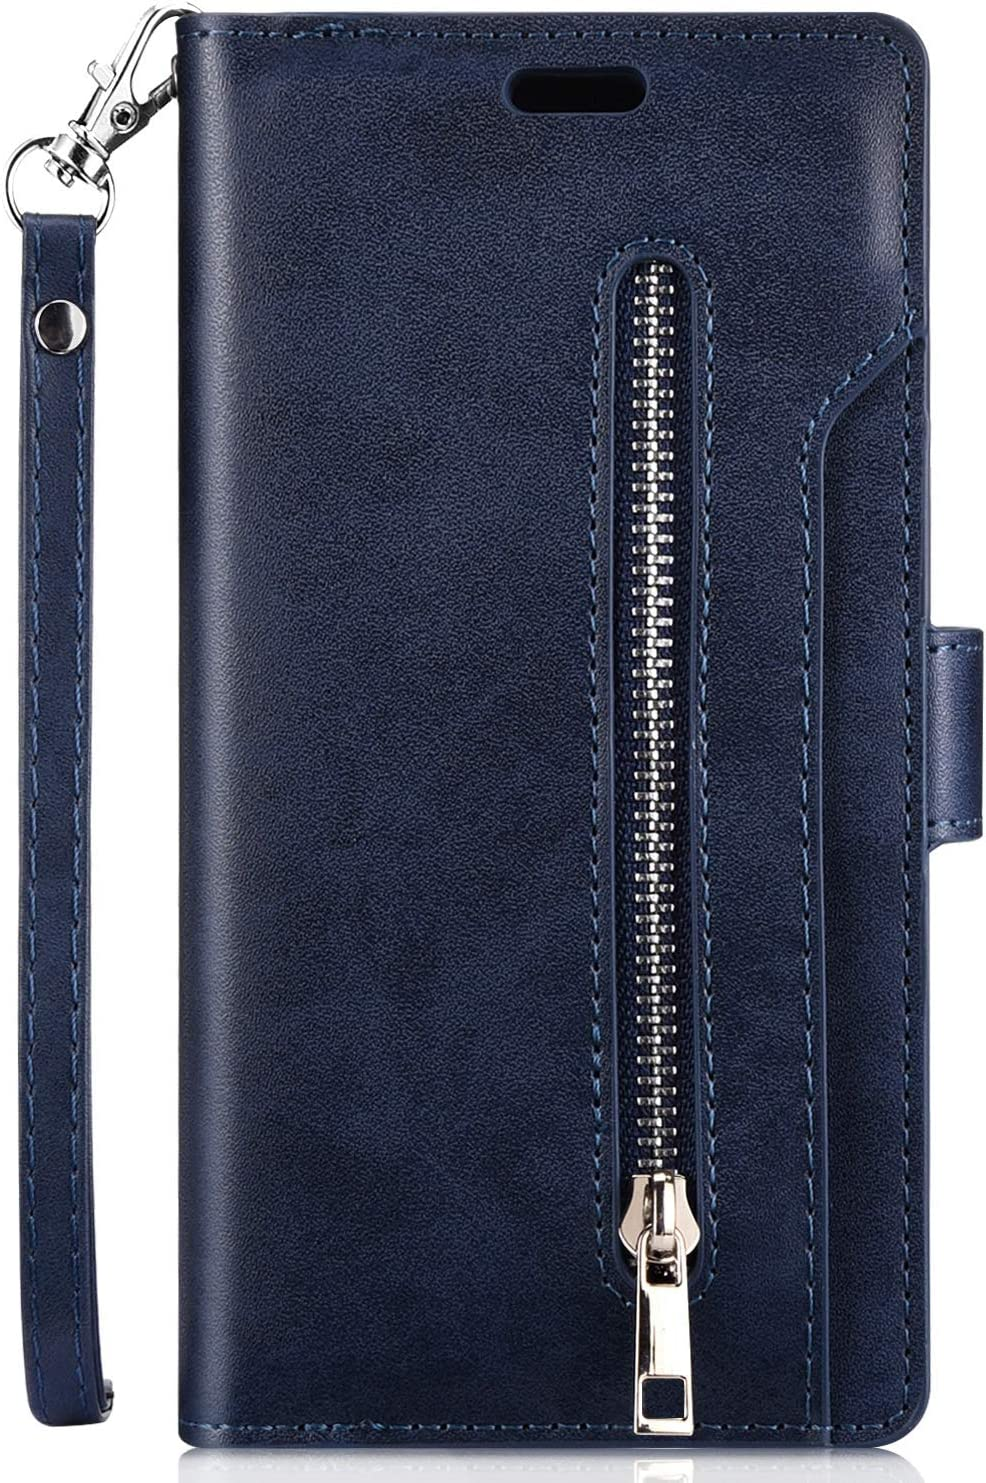 Premium PU Leather Wallet Folio Stand Cover Full Body Design Inner Soft TPU Silicone with Card Slots Magnetic Closure Protective Flexible Cover,Blue JAWSEU Case Flip Compatible with Huawei P30 Lite